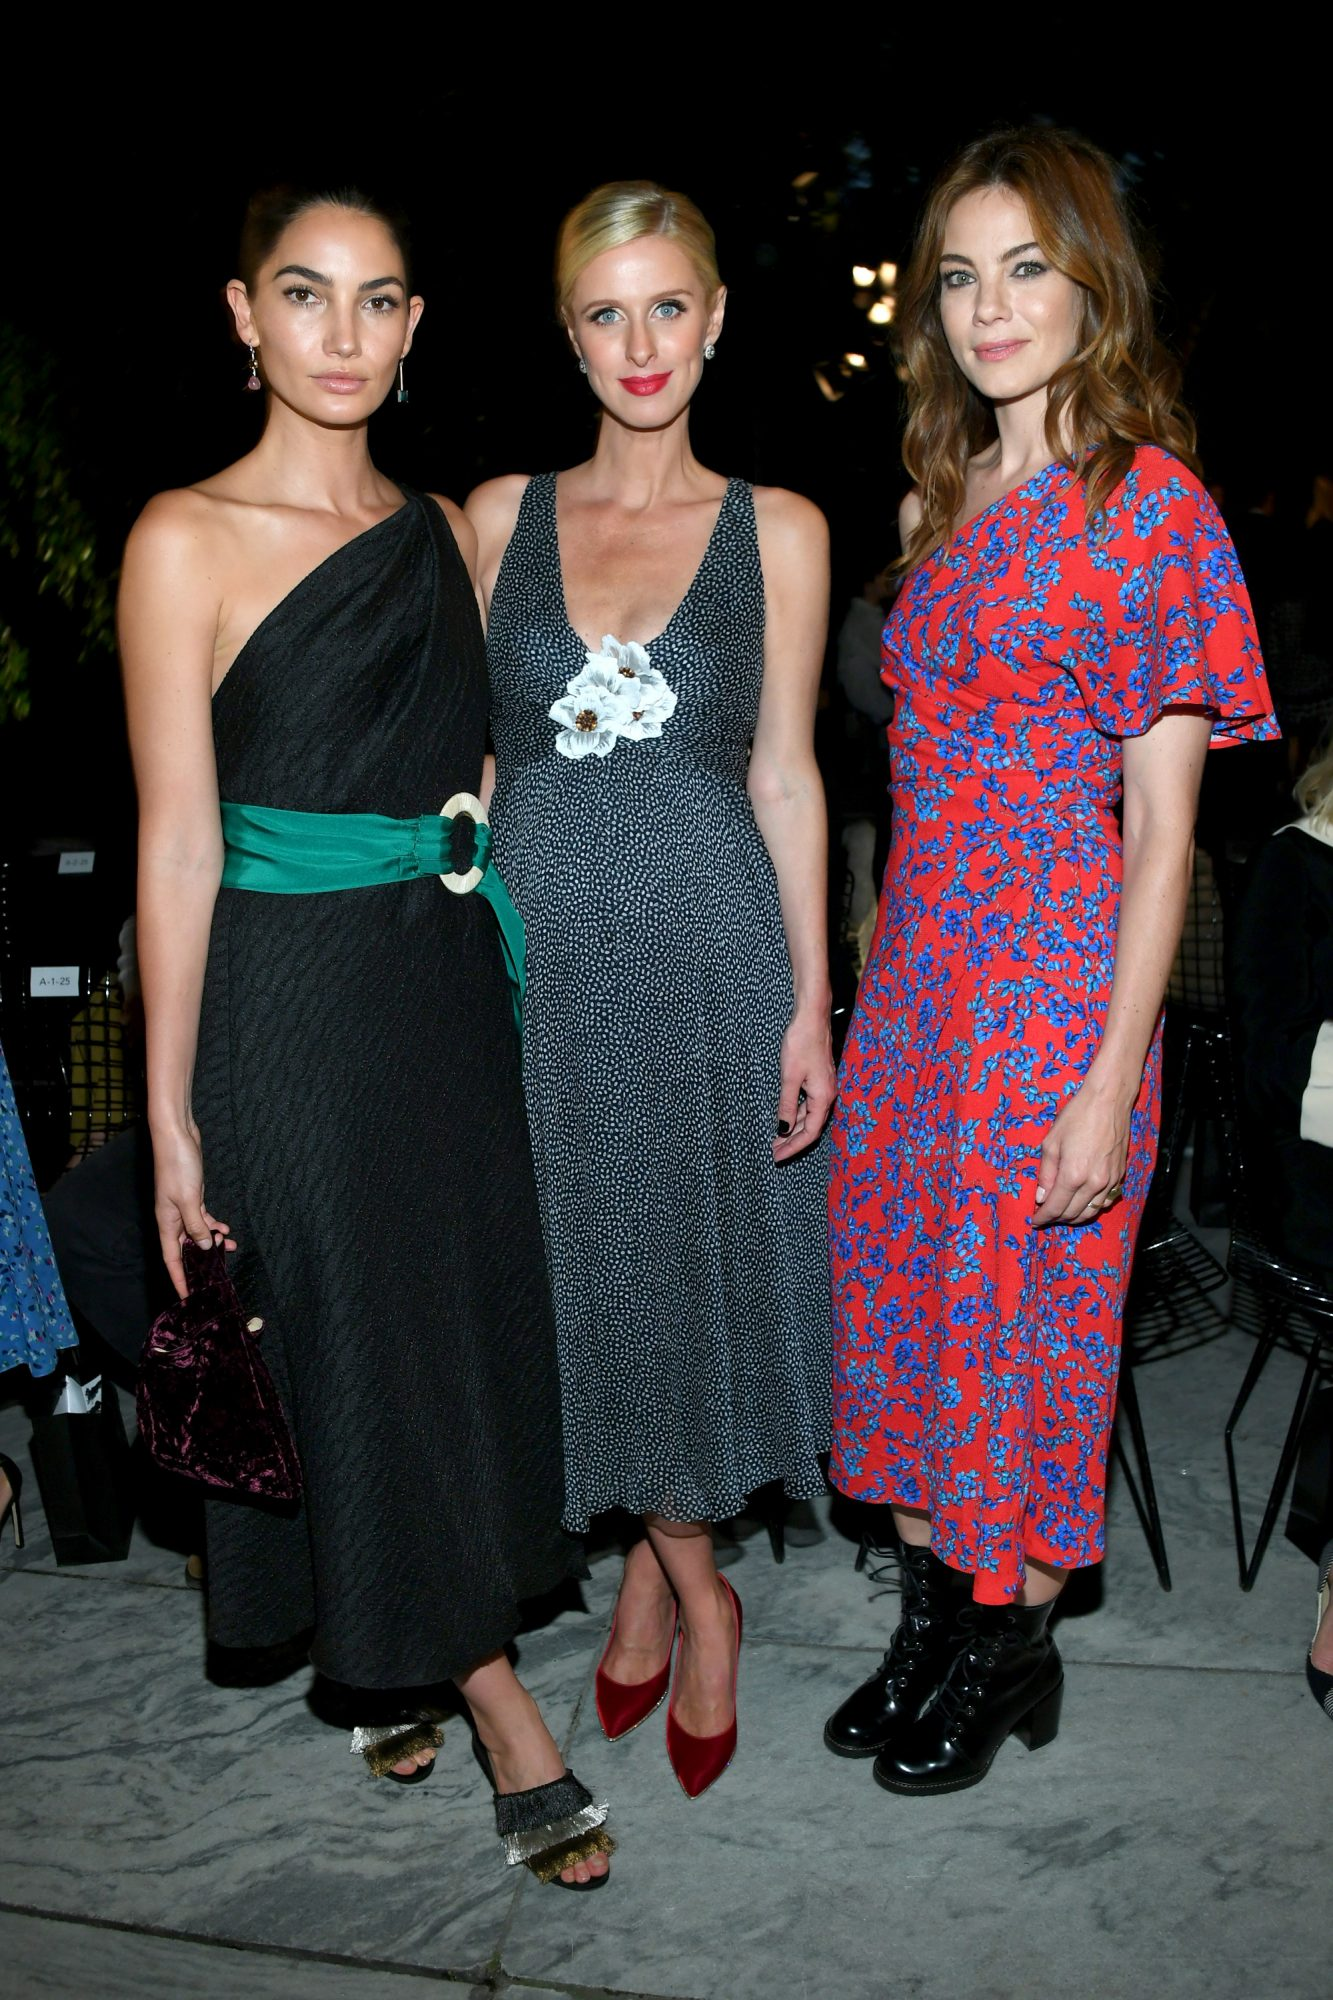 Lily Aldridge, Nicky Hilton Rothschild and Michelle Monaghan